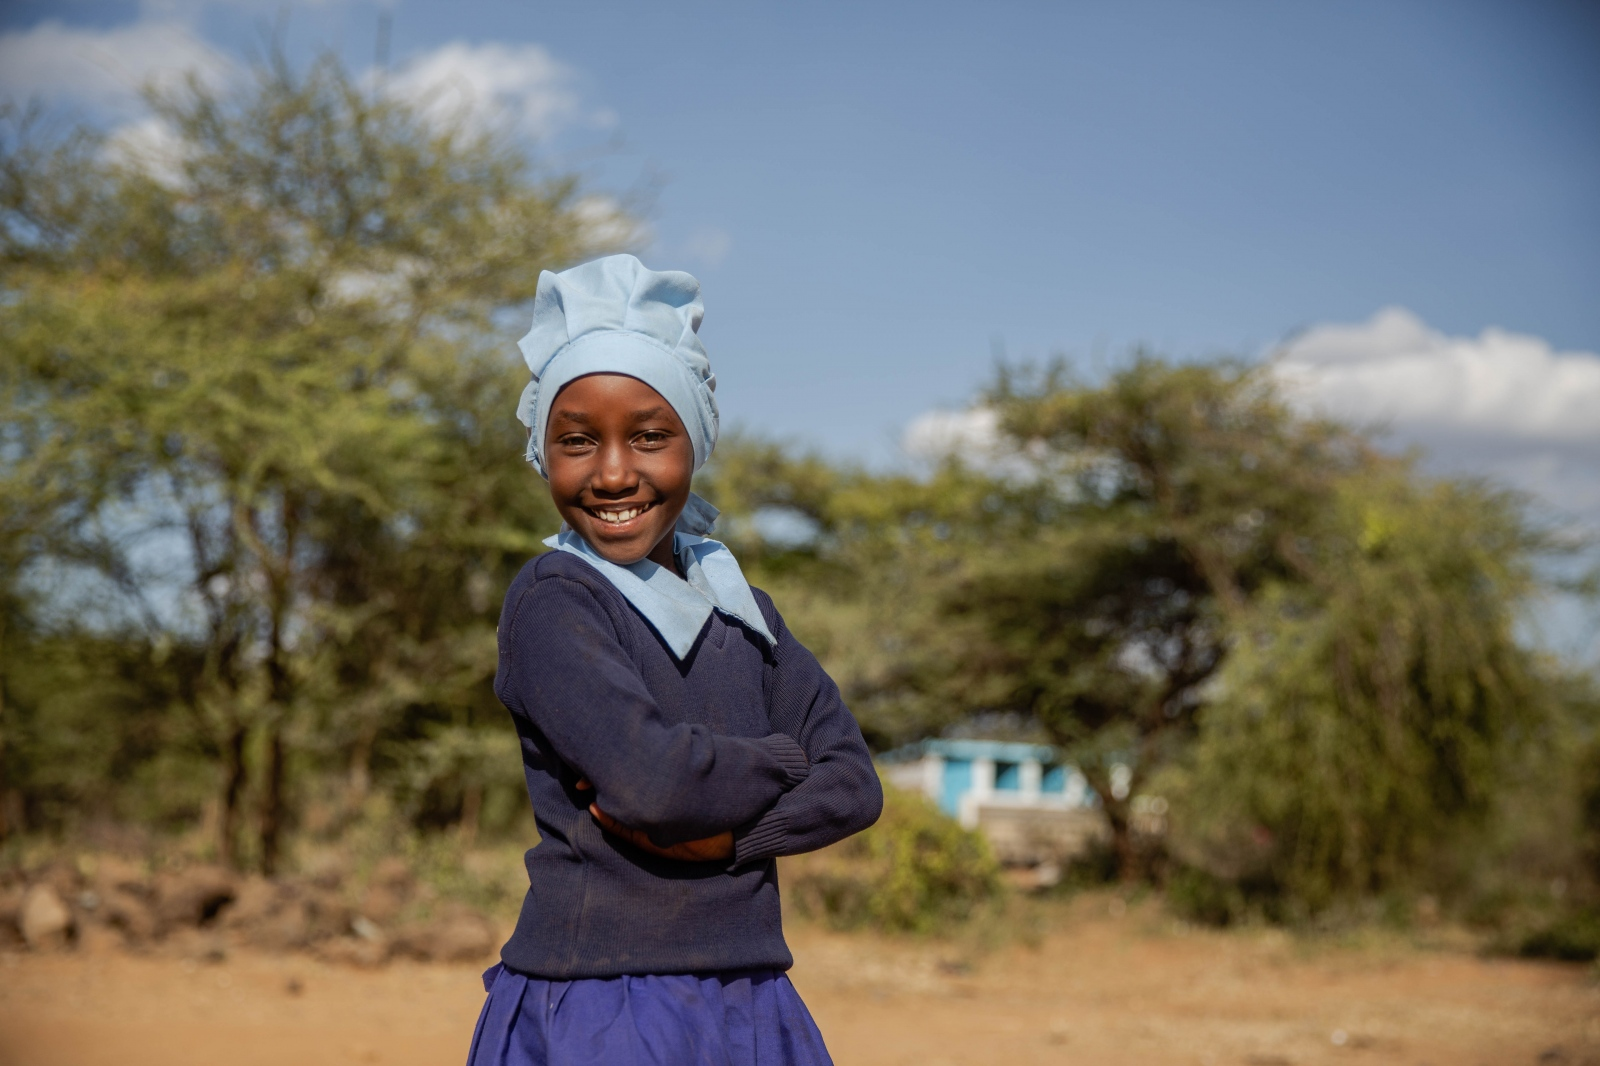 A pupil at Elangatawaus primary school in Kenya poses for a portrait. For World Relief